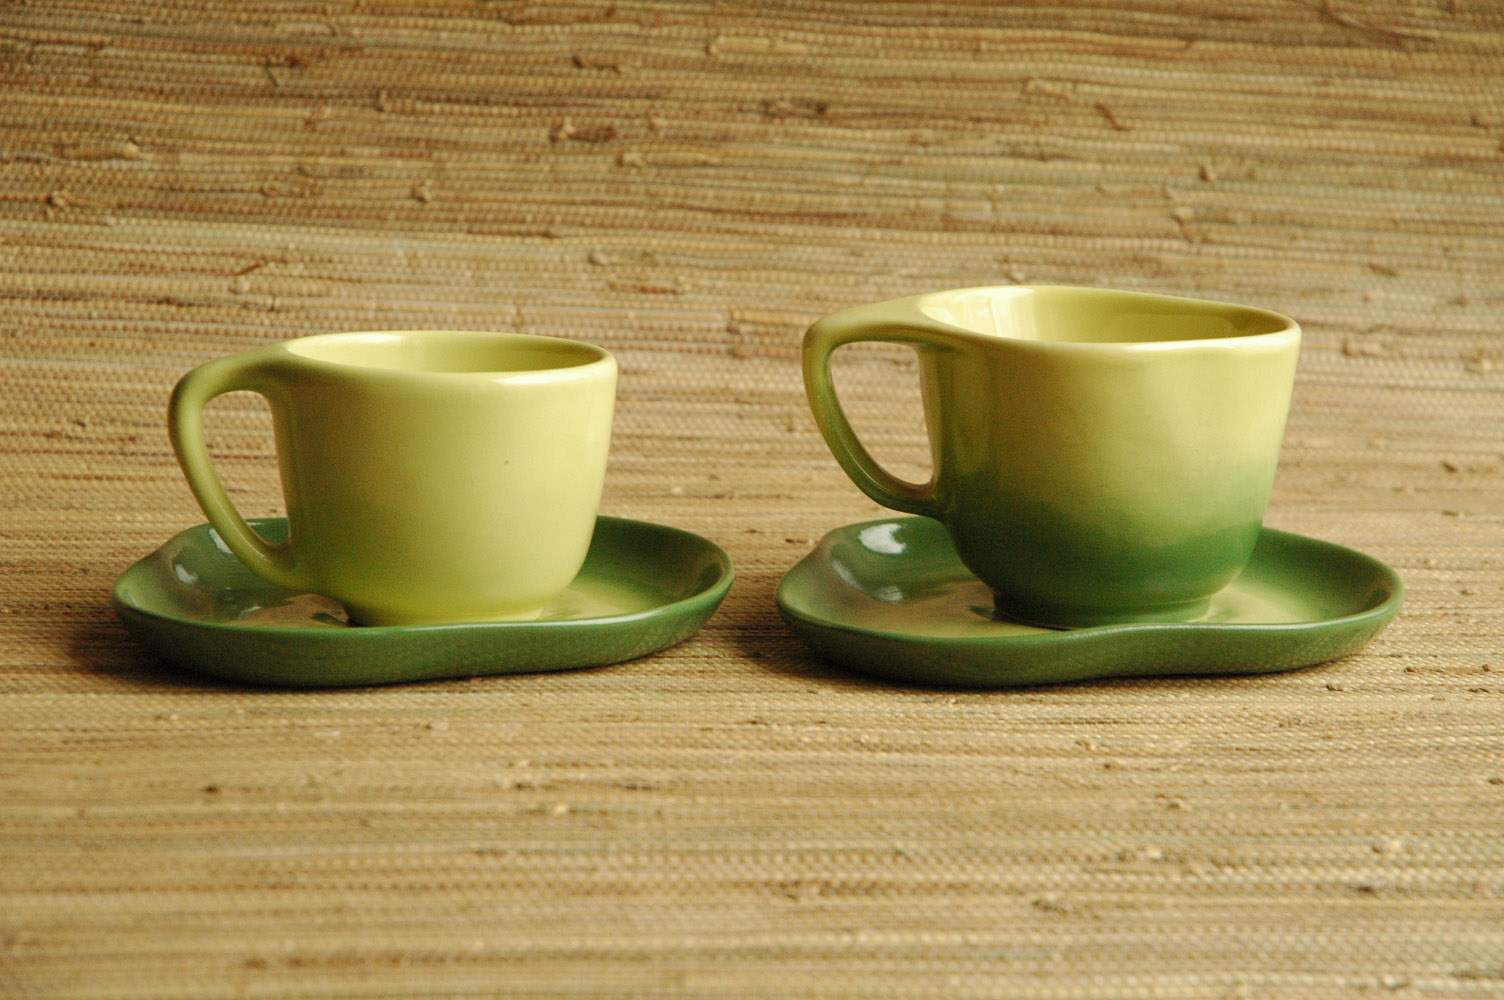 Tamac tea and coffee cups